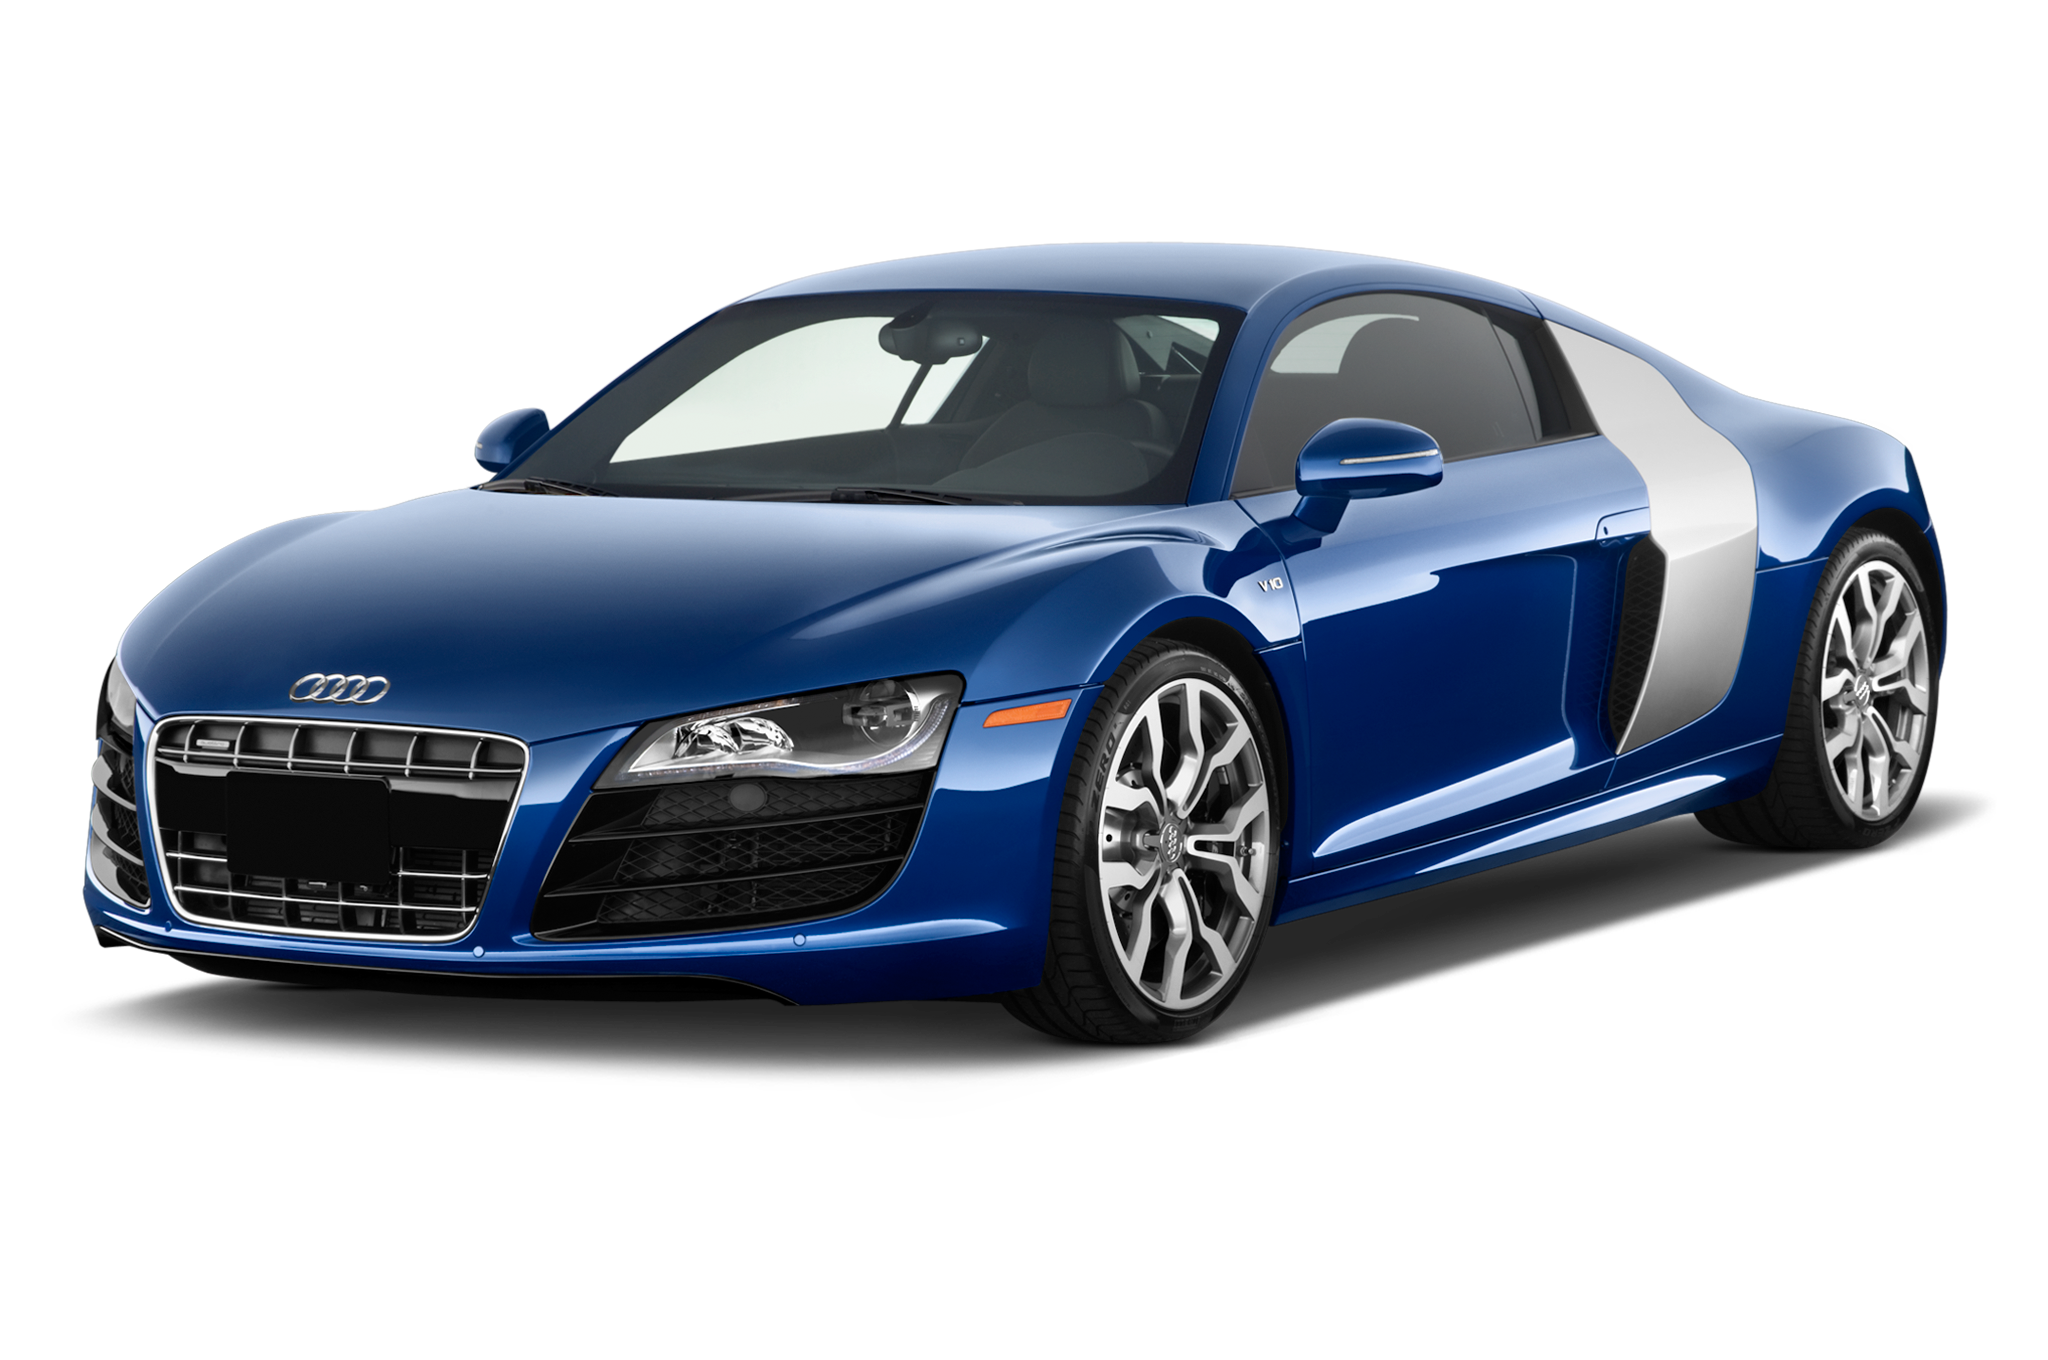 2010 audi r8 v10 audi sport coupe review automobile magazine. Black Bedroom Furniture Sets. Home Design Ideas